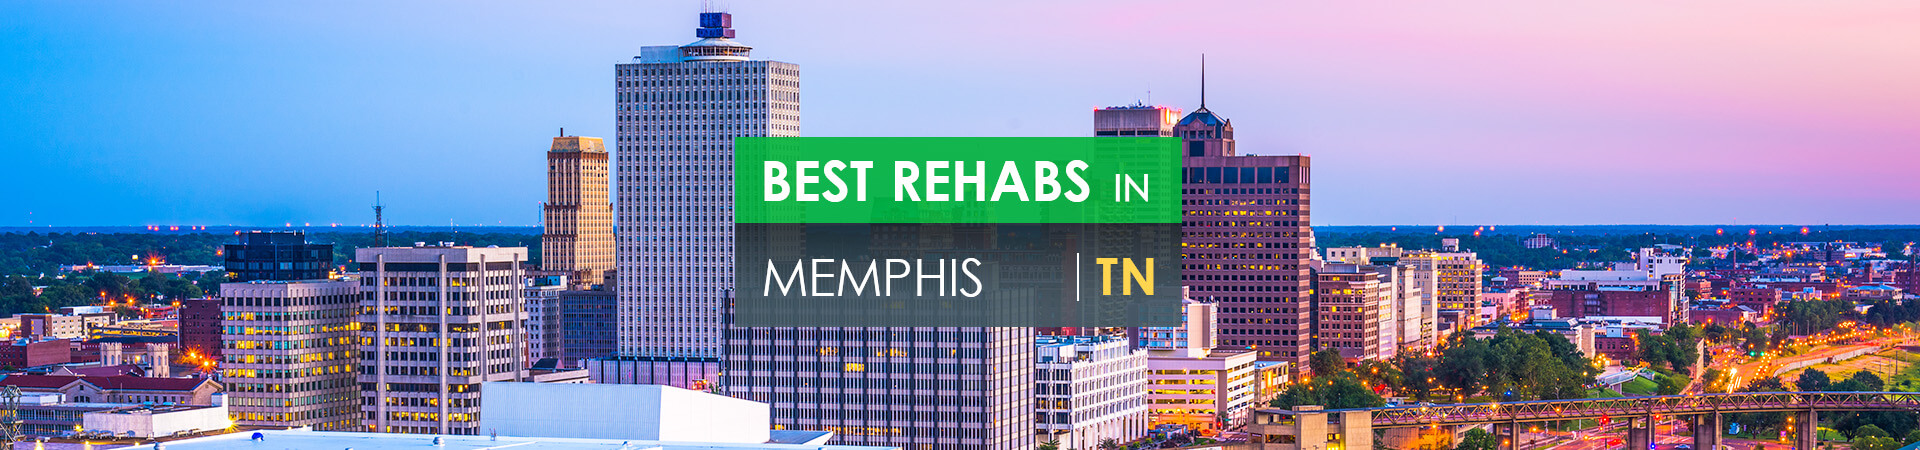 Best rehabs in Memphis, TN